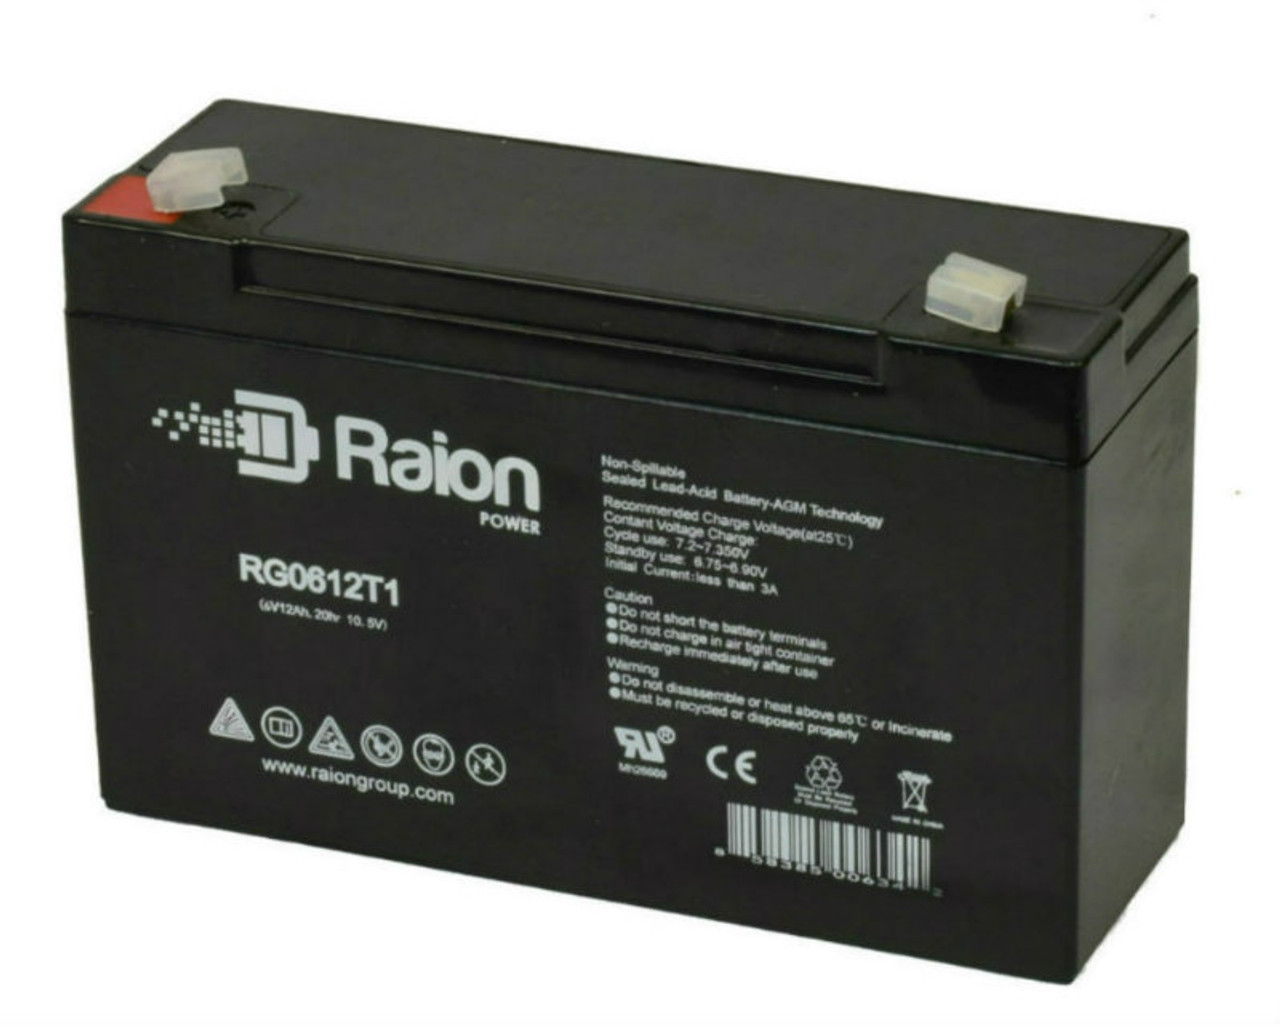 Raion Power RG06120T1 Replacement Battery Pack for Holophane EH10 emergency light